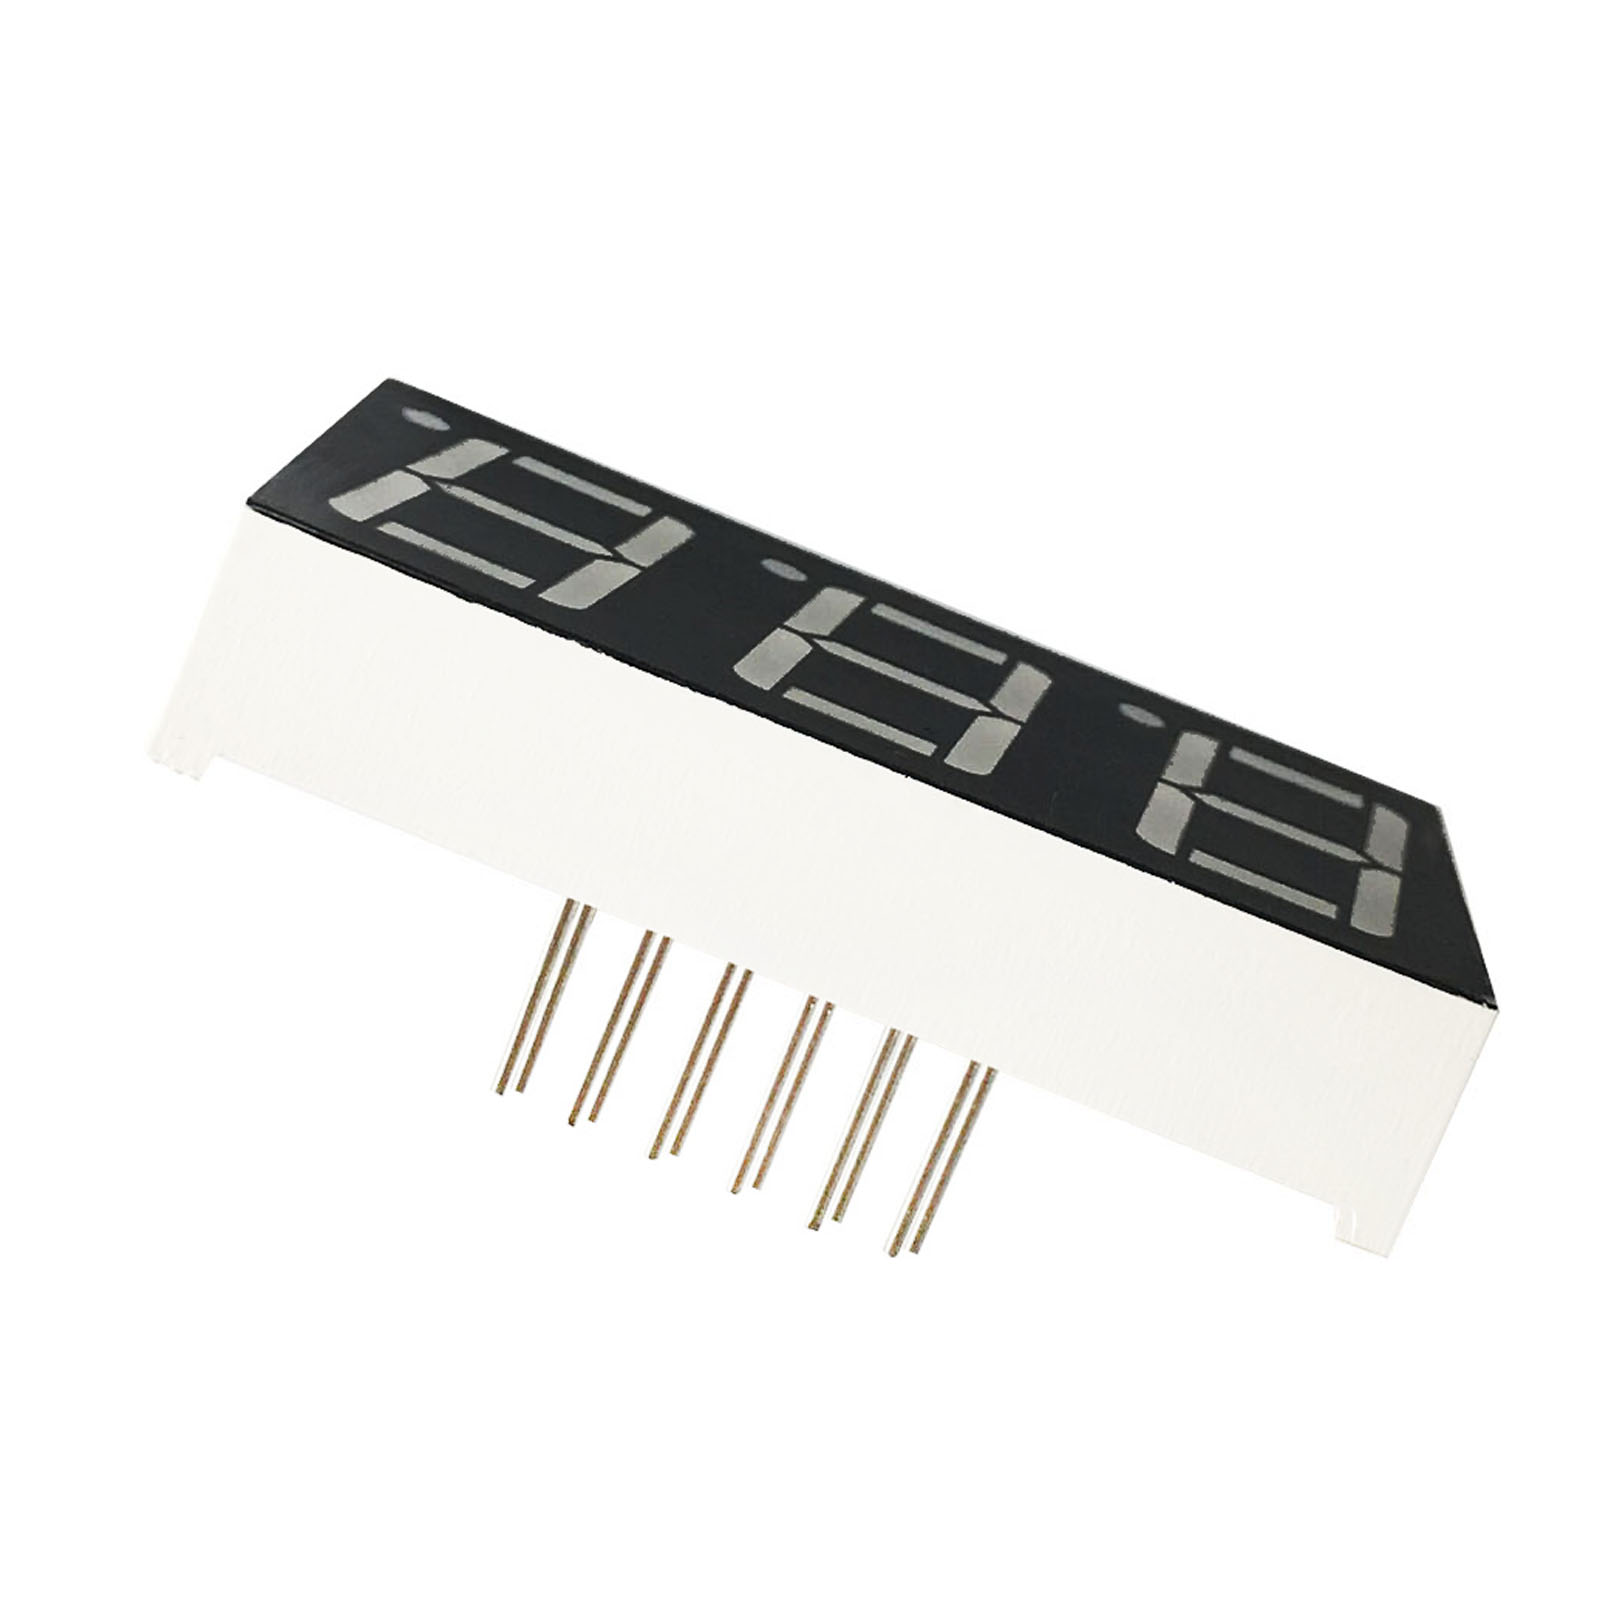 MCIGICM 100pcs 7 segment Common Anode 3 Bit digital Tube 0.56